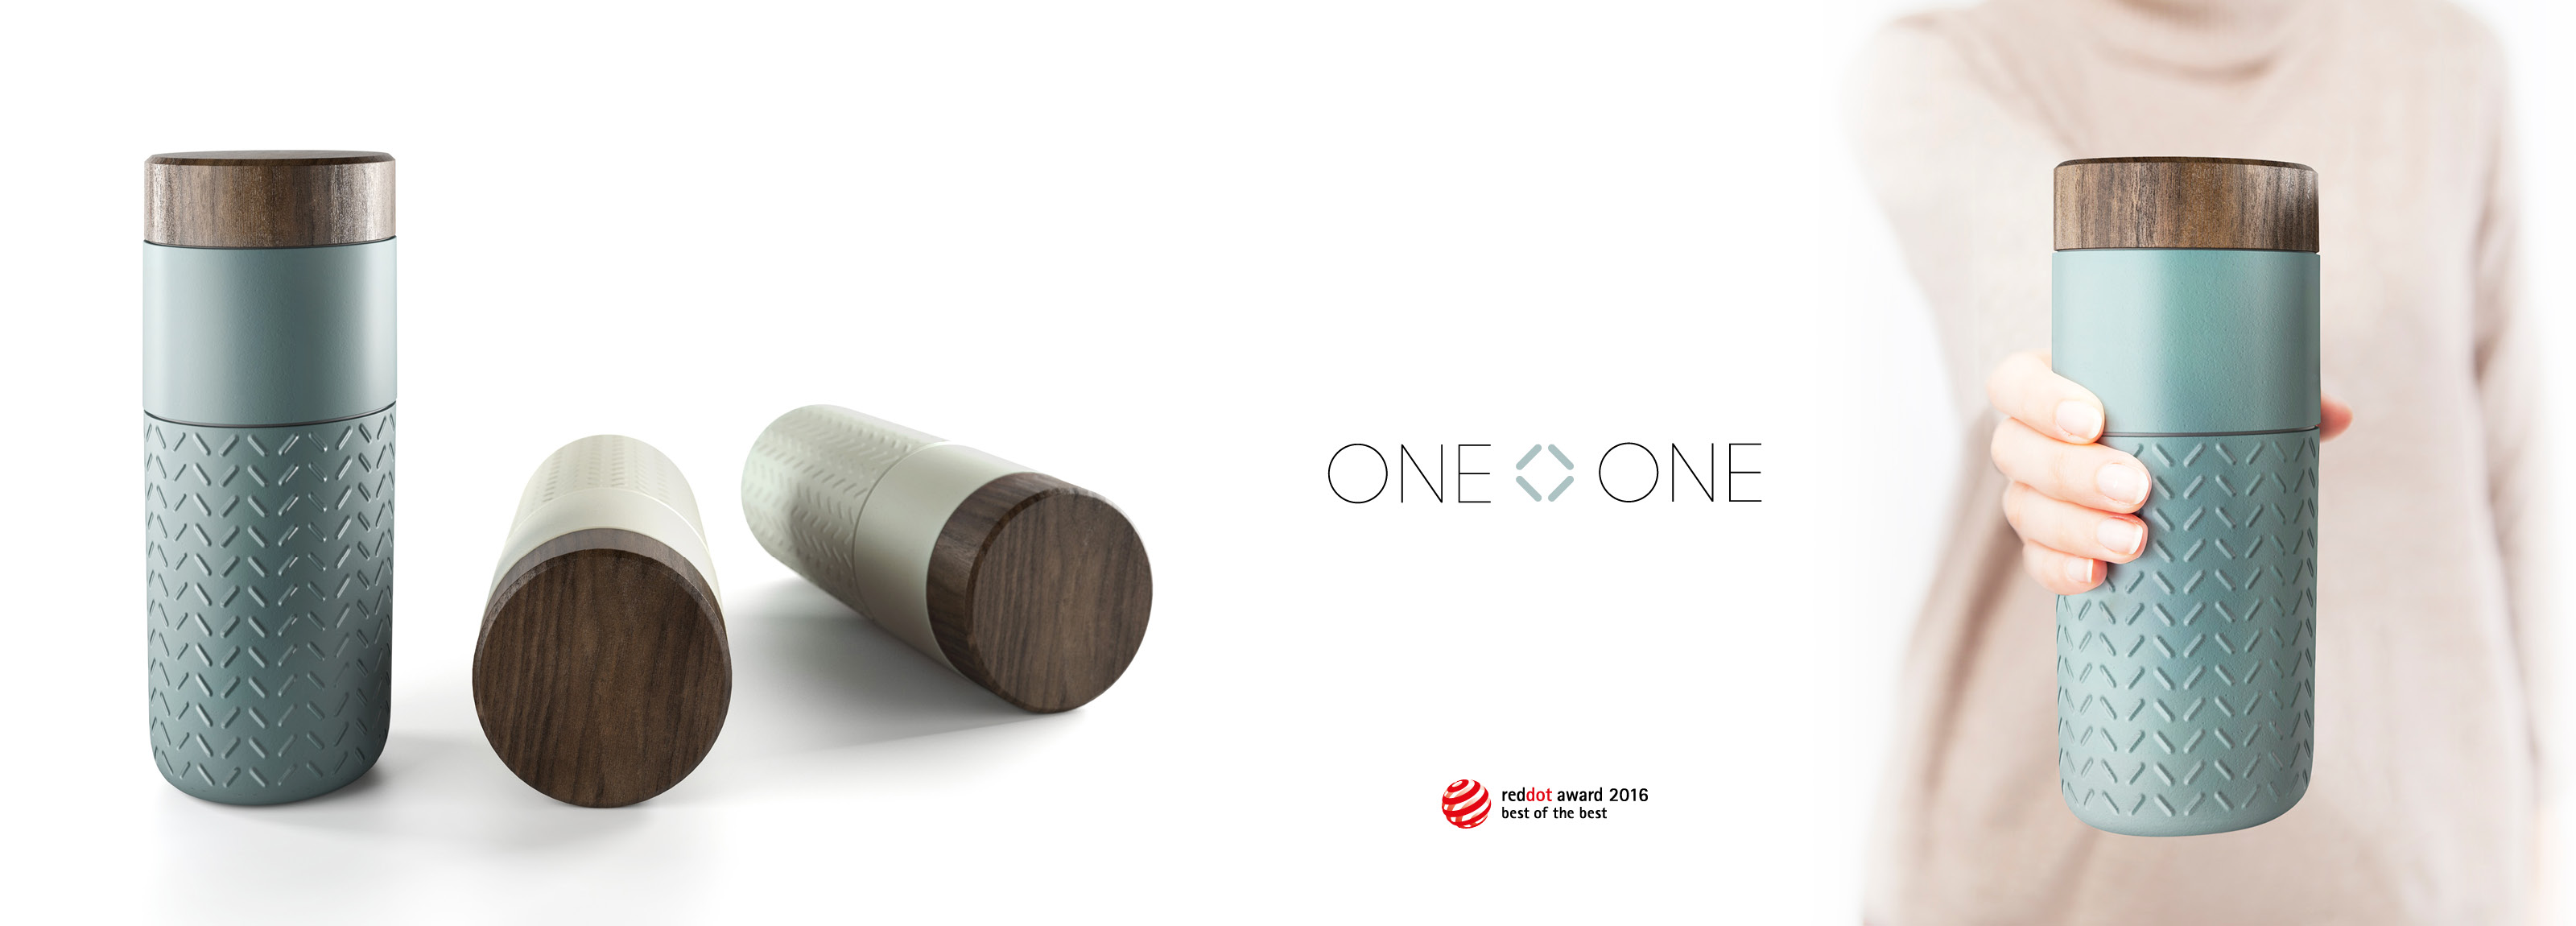 One-o-One, winner of the Red Dot Design Award, introduces a new concept of accessory signed by Hangar Design Group